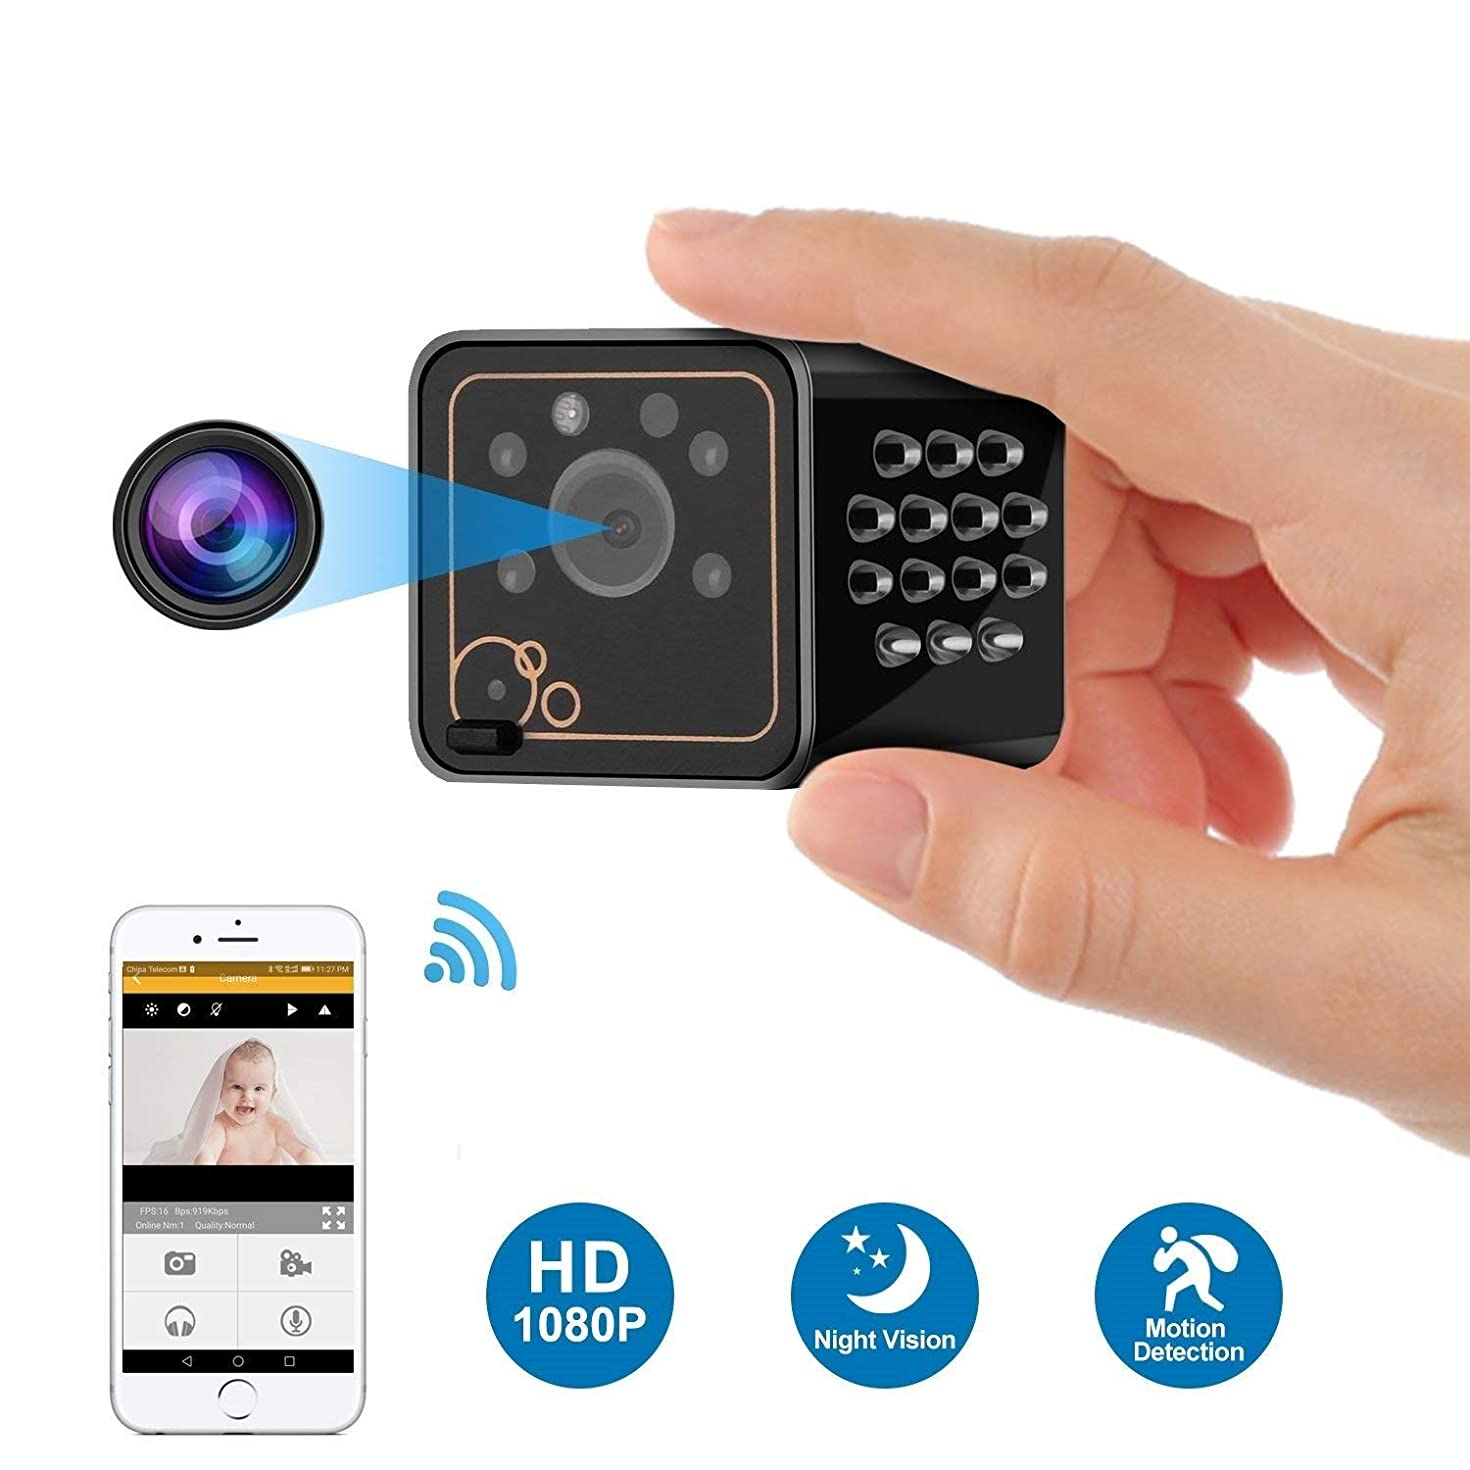 MYXMY Spy Camera Wireless Hidden Camera, Latest 1080P Hidden Camera Video Recorder, WiFi Nanny Cam with Night Vision, IP Security Camera for Home Security Monitoring (Color : No Memory Card)